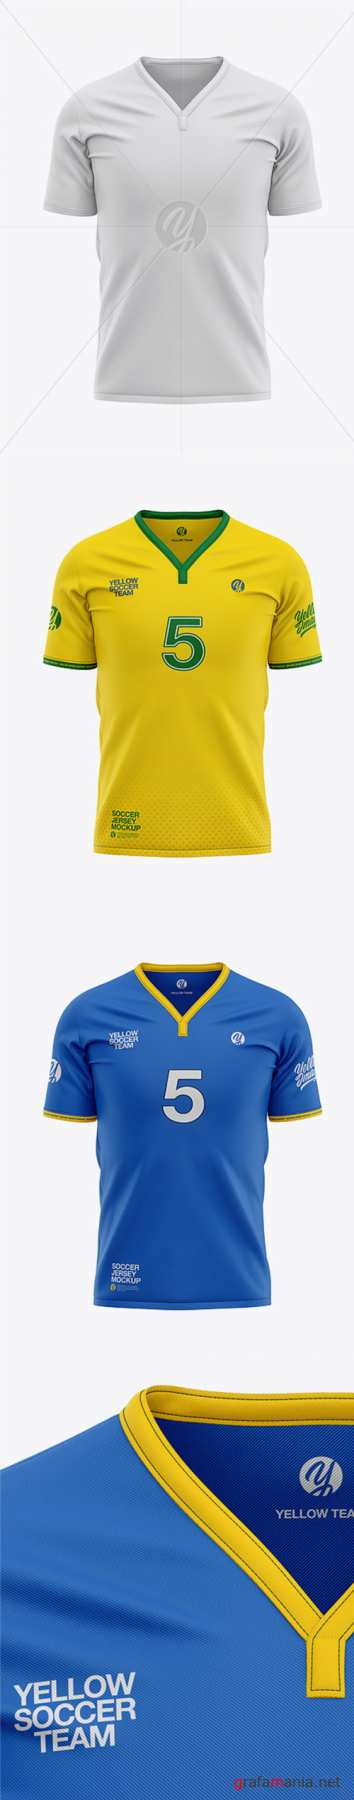 Mens Soccer Y-Neck Jersey Mockup - Front View 37046 TIF